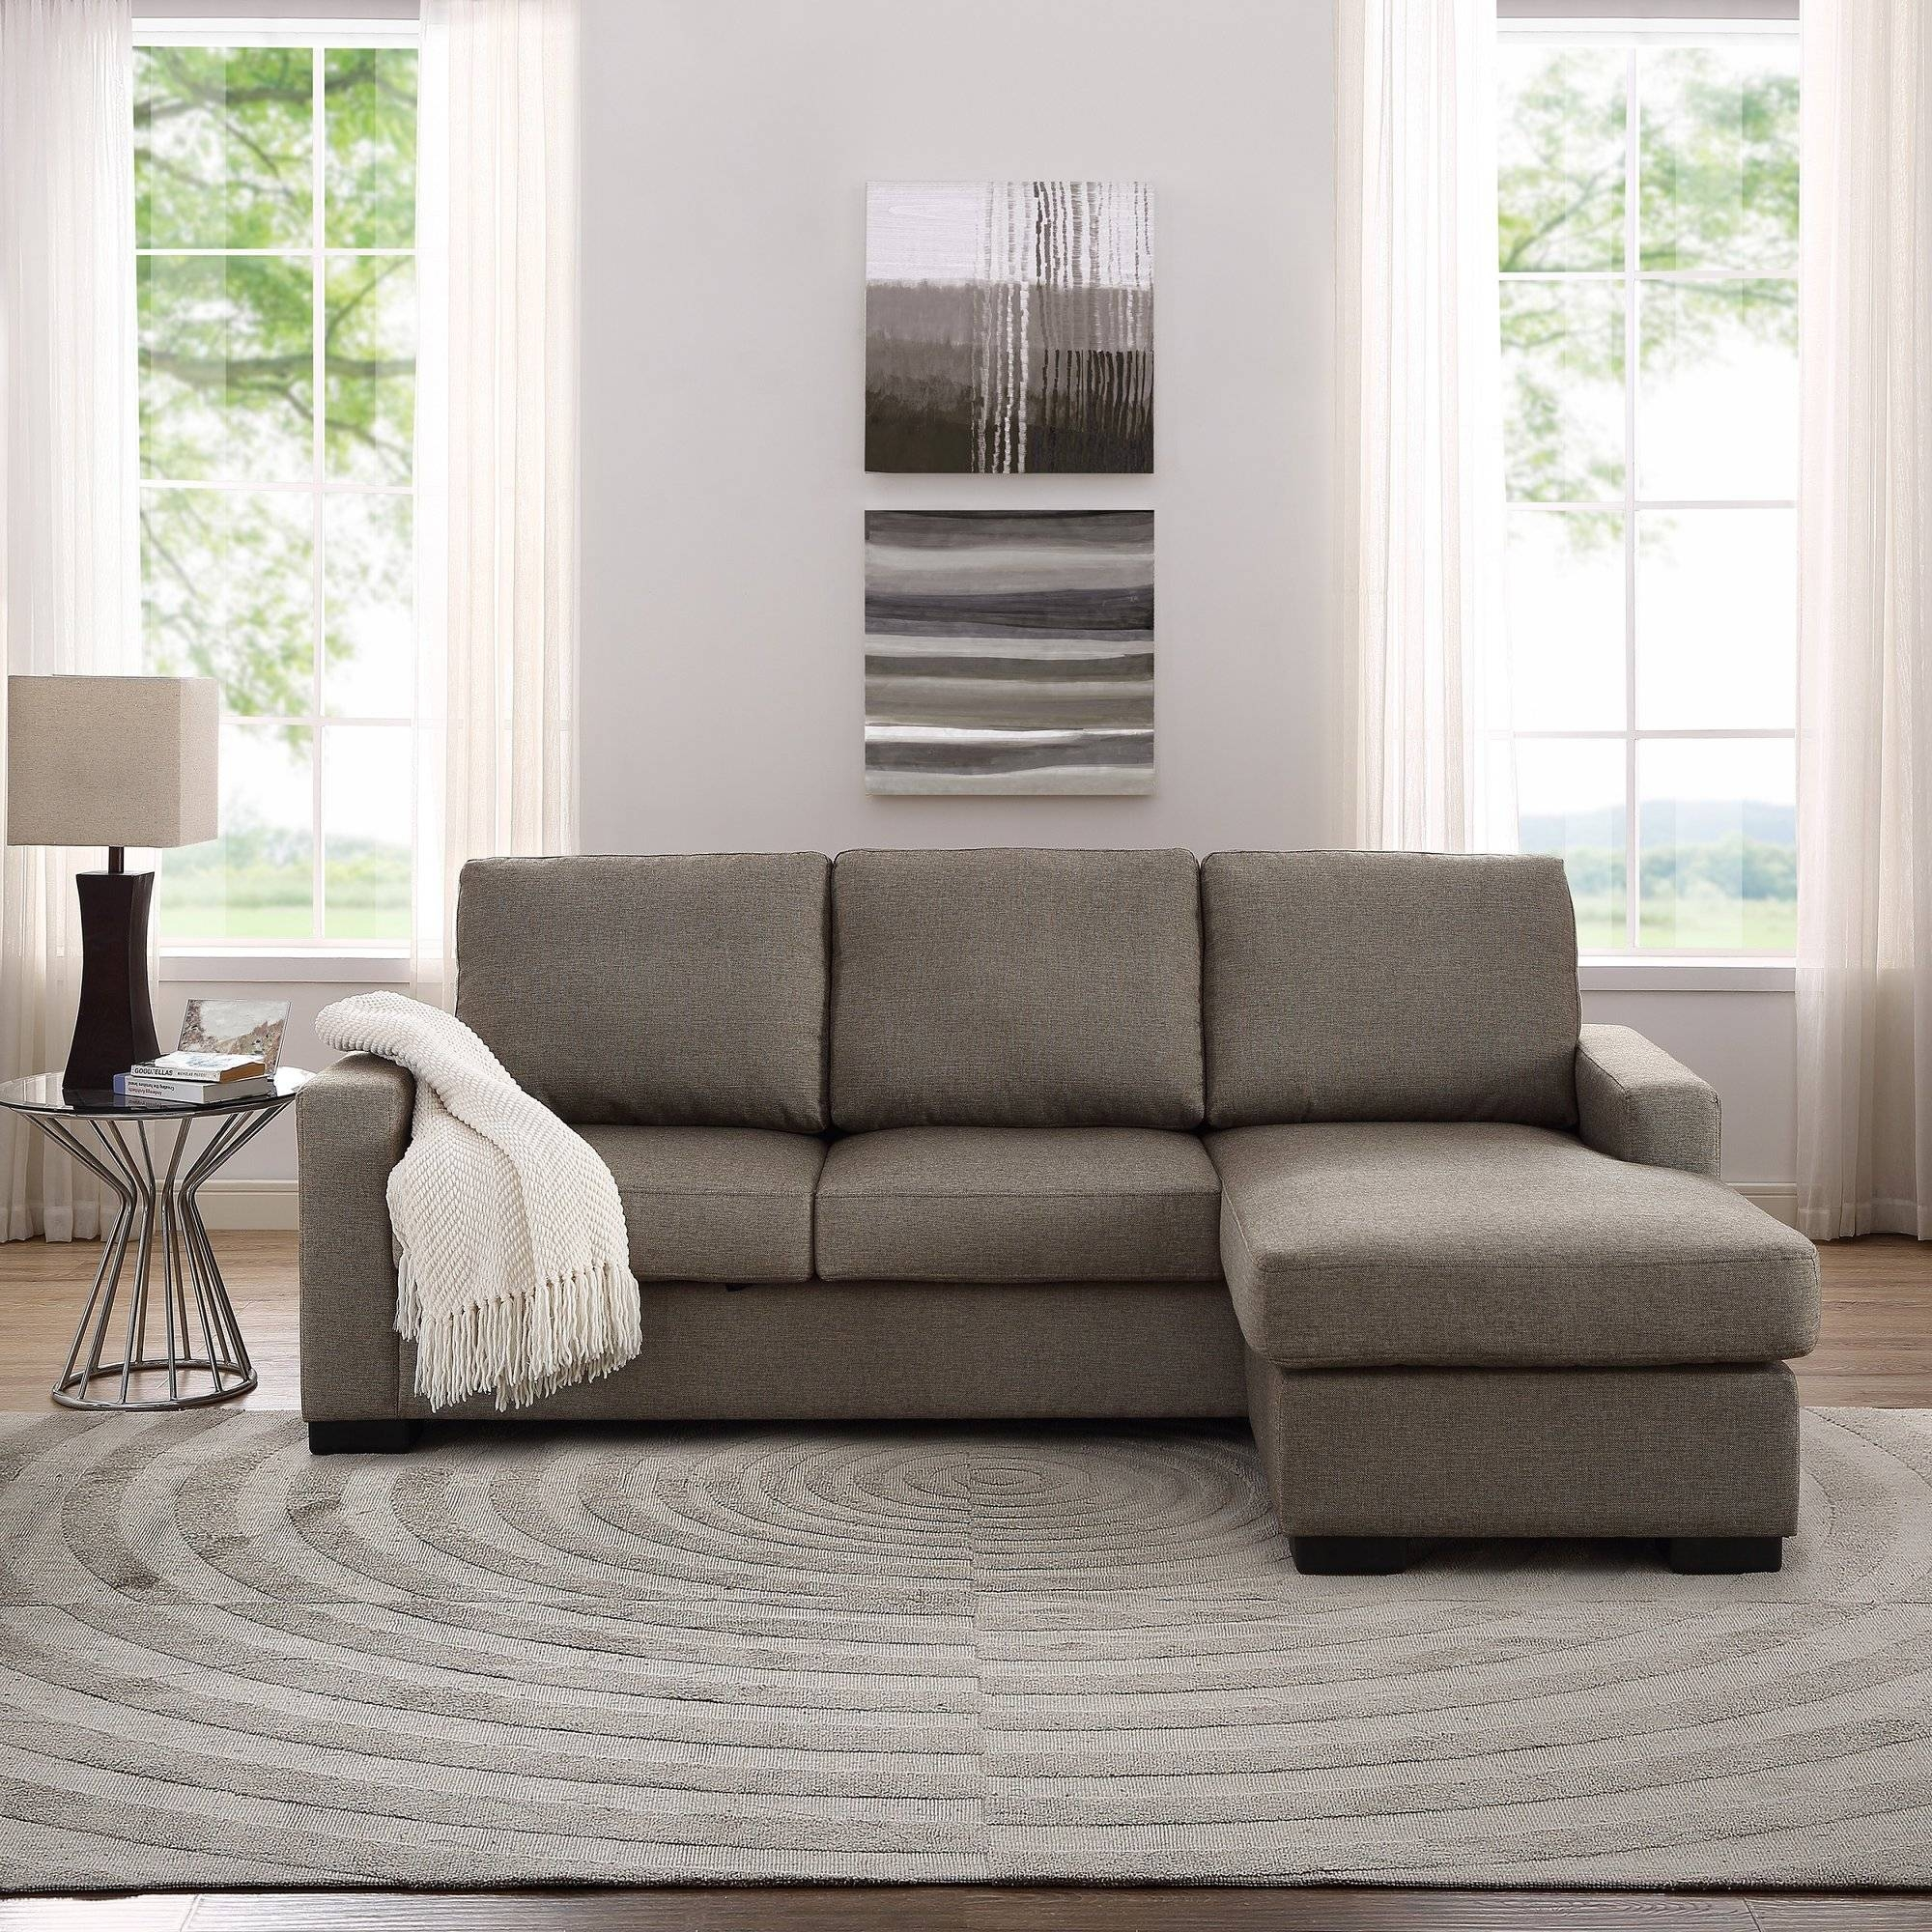 Furniture: Sectional Sofas Amazon | Tufted Sectional Sofa Chaise with regard to Tufted Sectional Sofa With Chaise (Image 8 of 30)